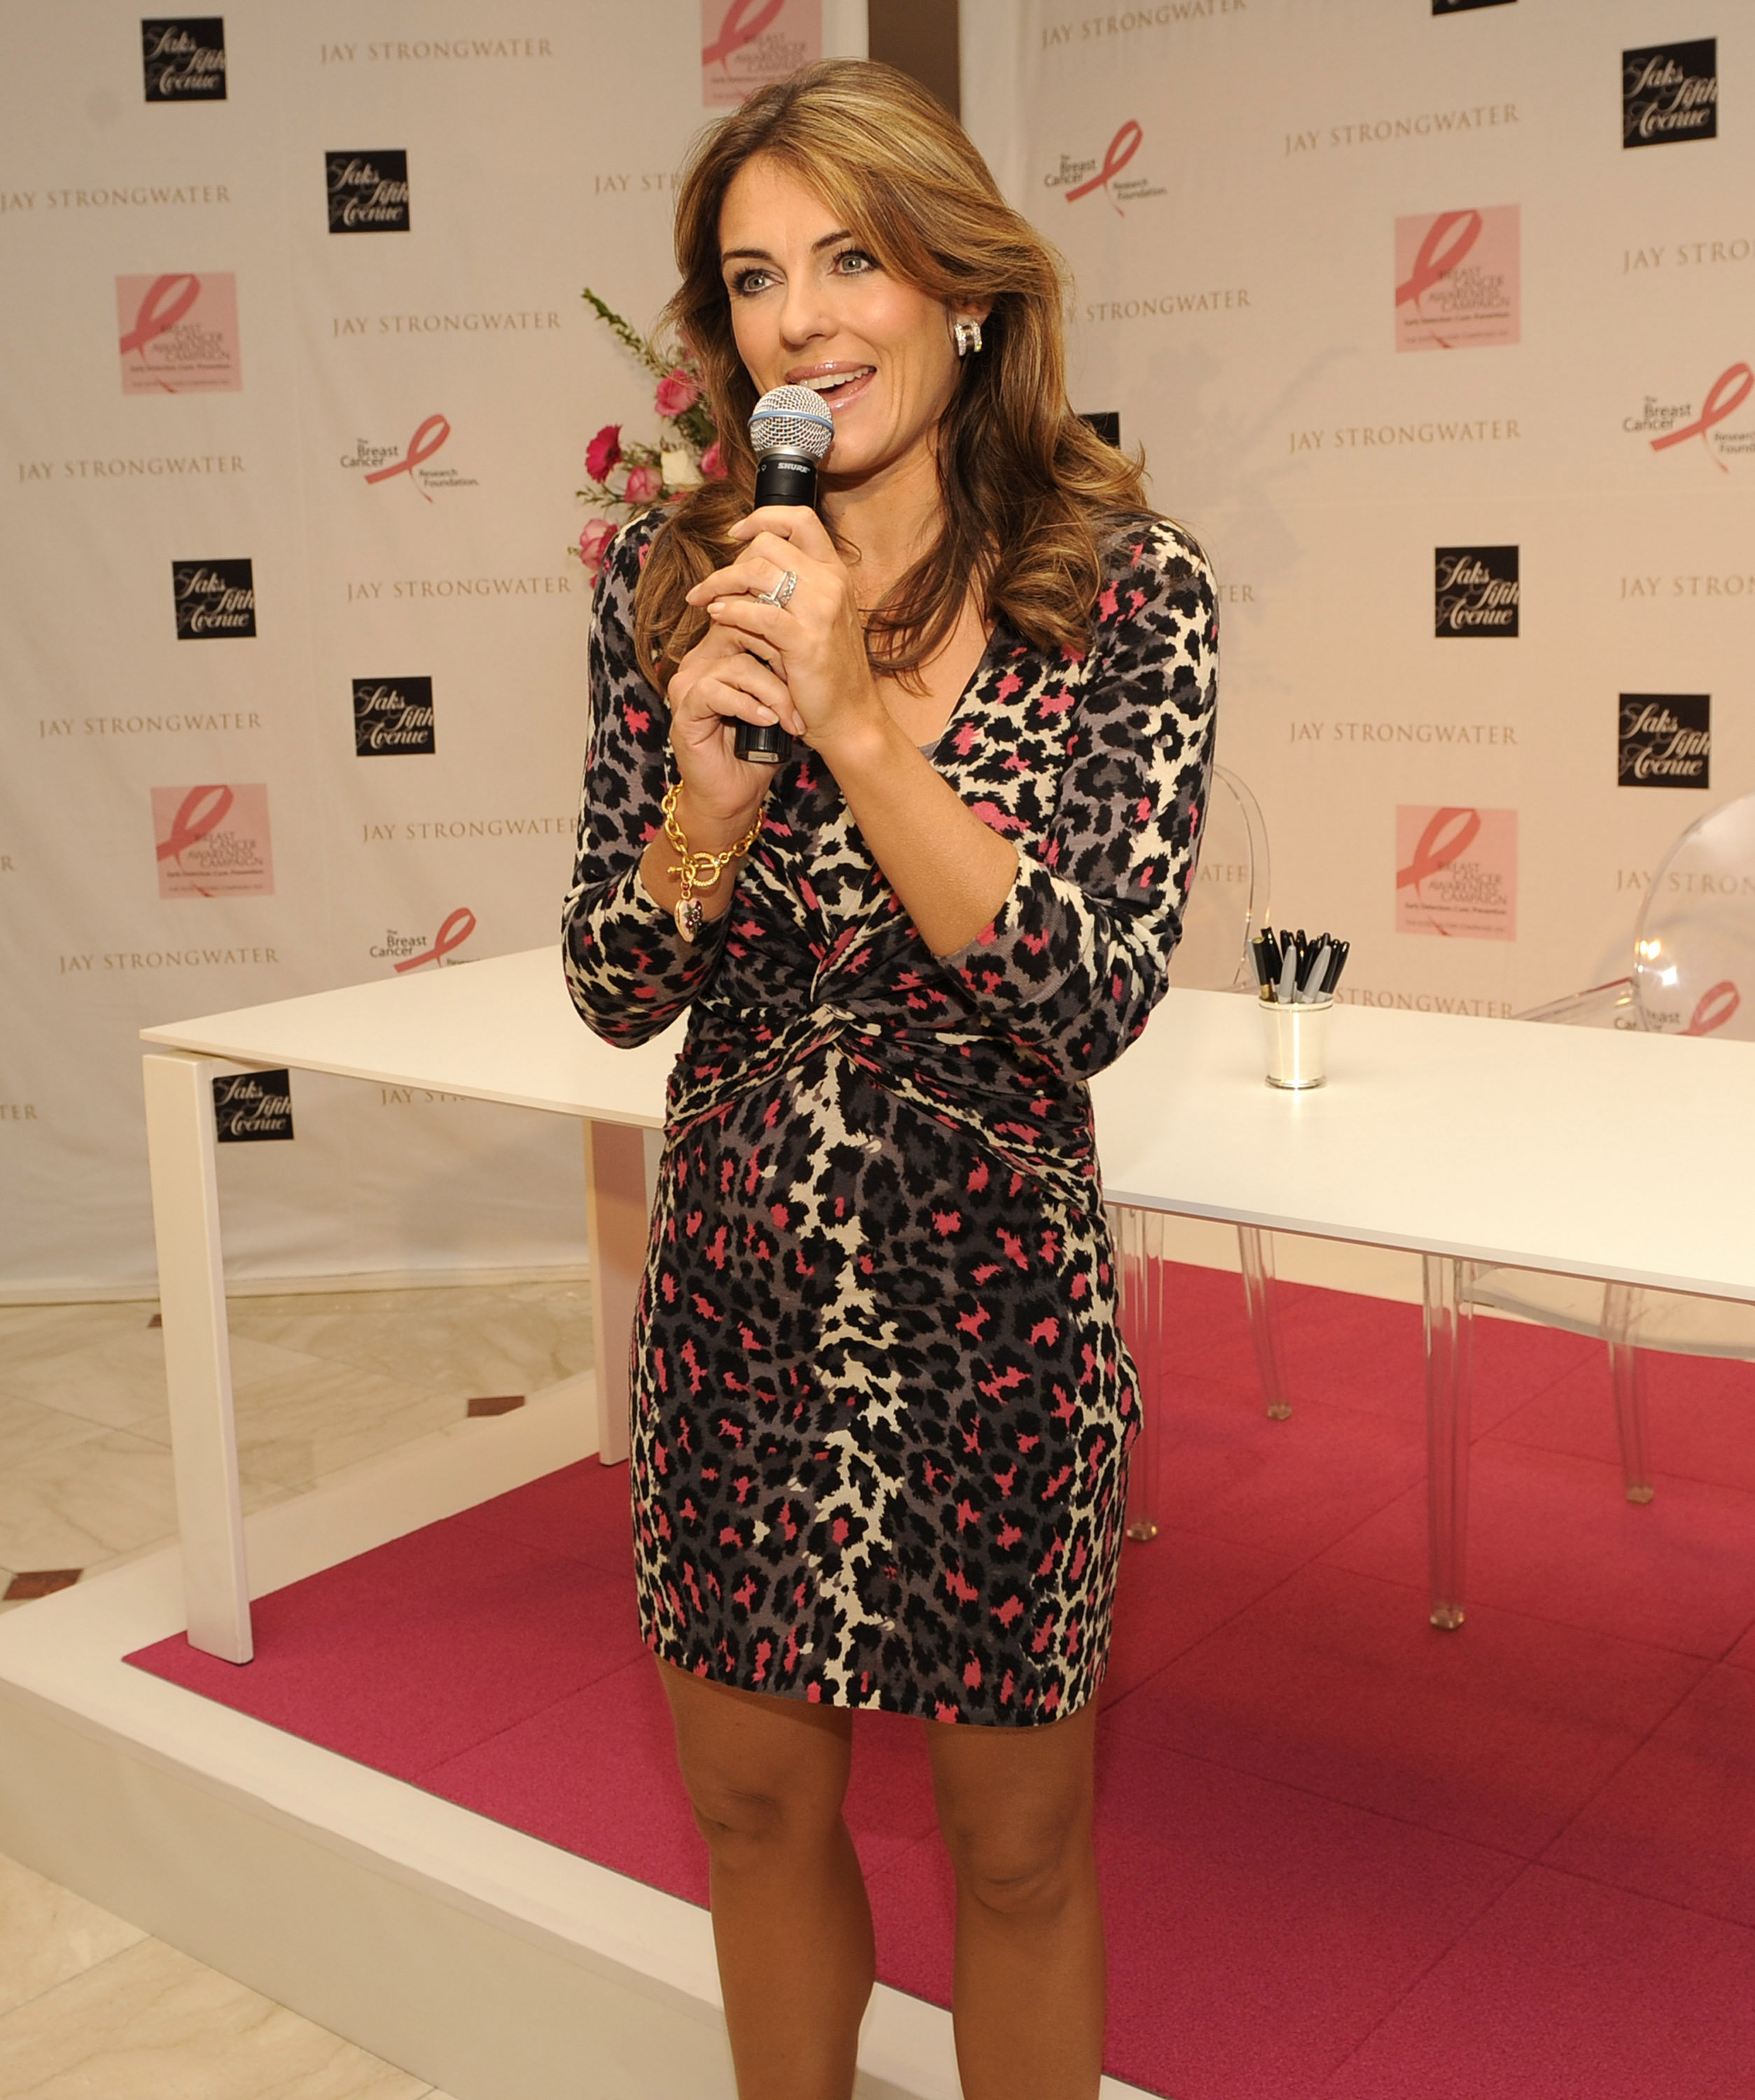 84767_Celebutopia-Elizabeth_Hurley-Celebration_of_Jay_Strongwater_limited_edition_pink_reflections_compact-05_122_178lo.jpg